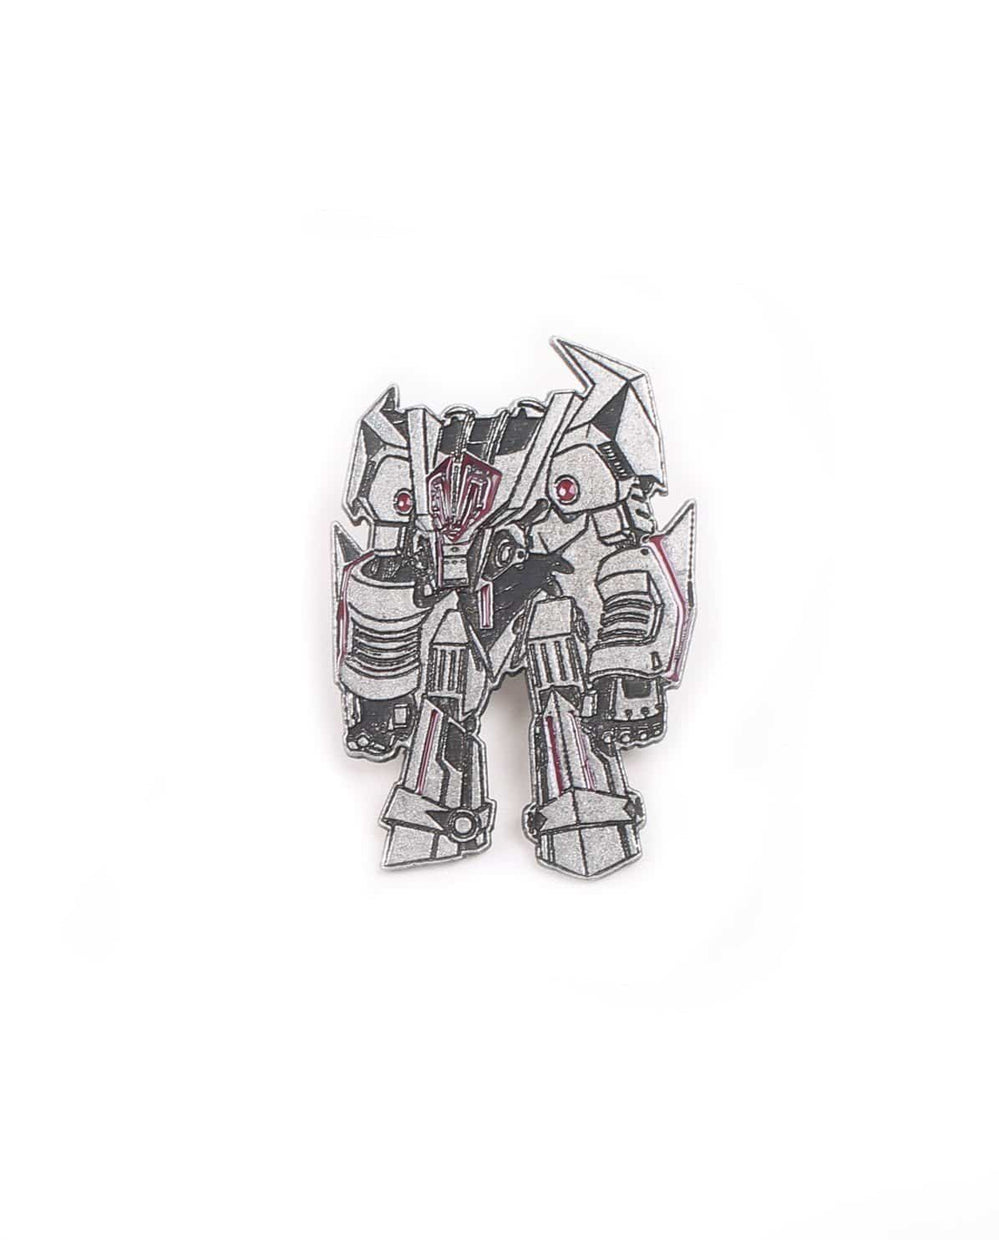 Destroid 'Robot' Hat Pin